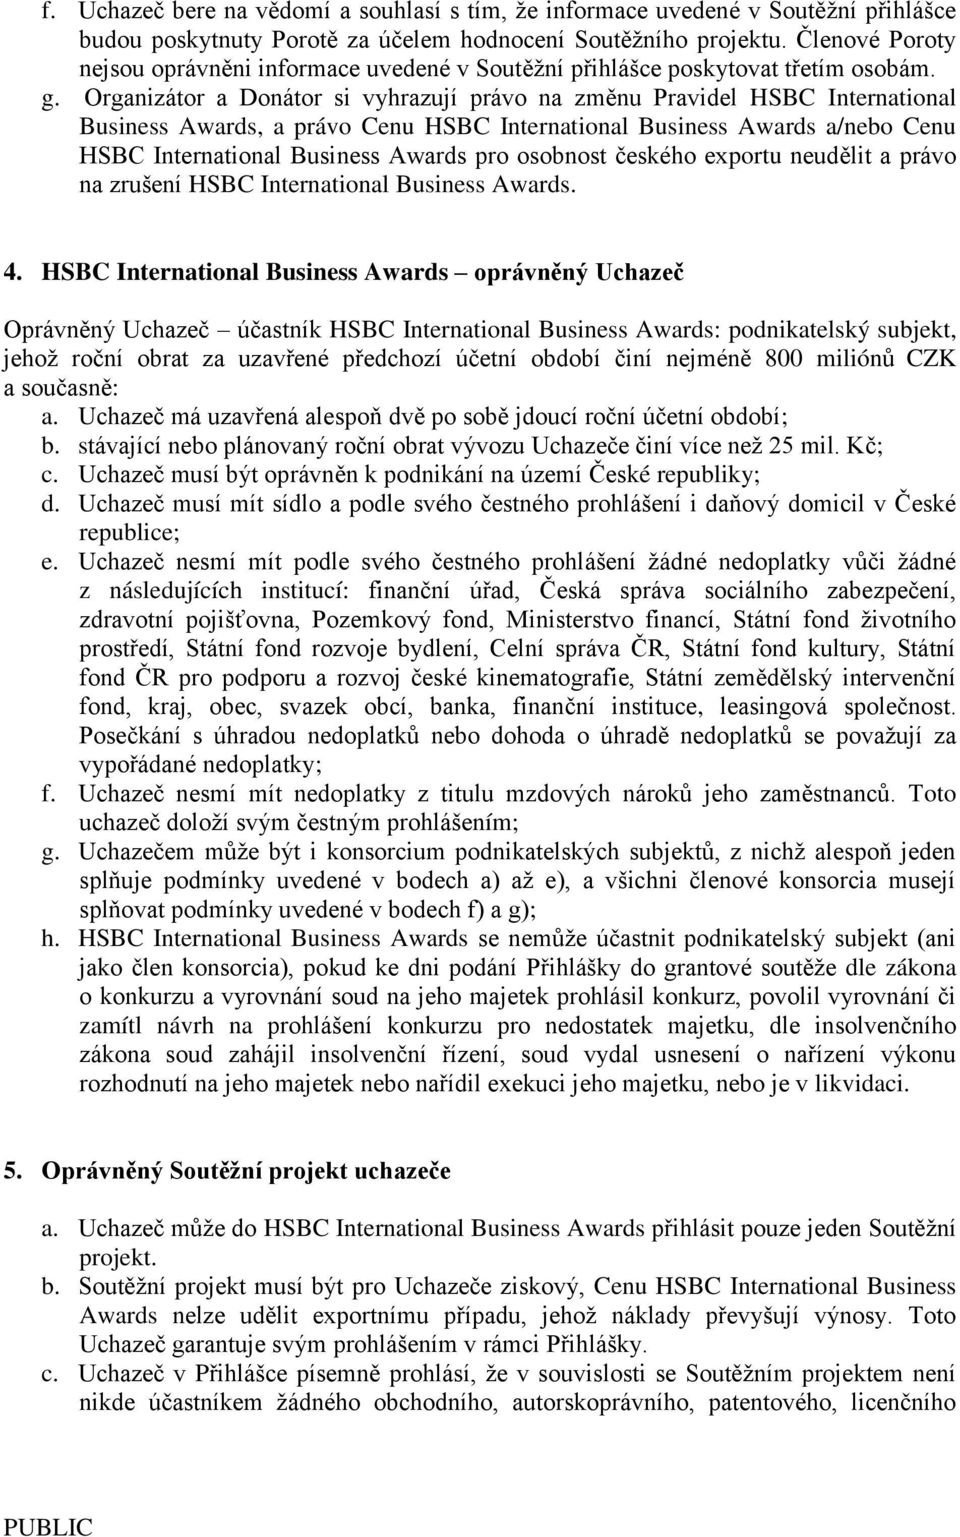 Organizátor a Donátor si vyhrazují právo na změnu Pravidel HSBC International Business Awards, a právo Cenu HSBC International Business Awards a/nebo Cenu HSBC International Business Awards pro